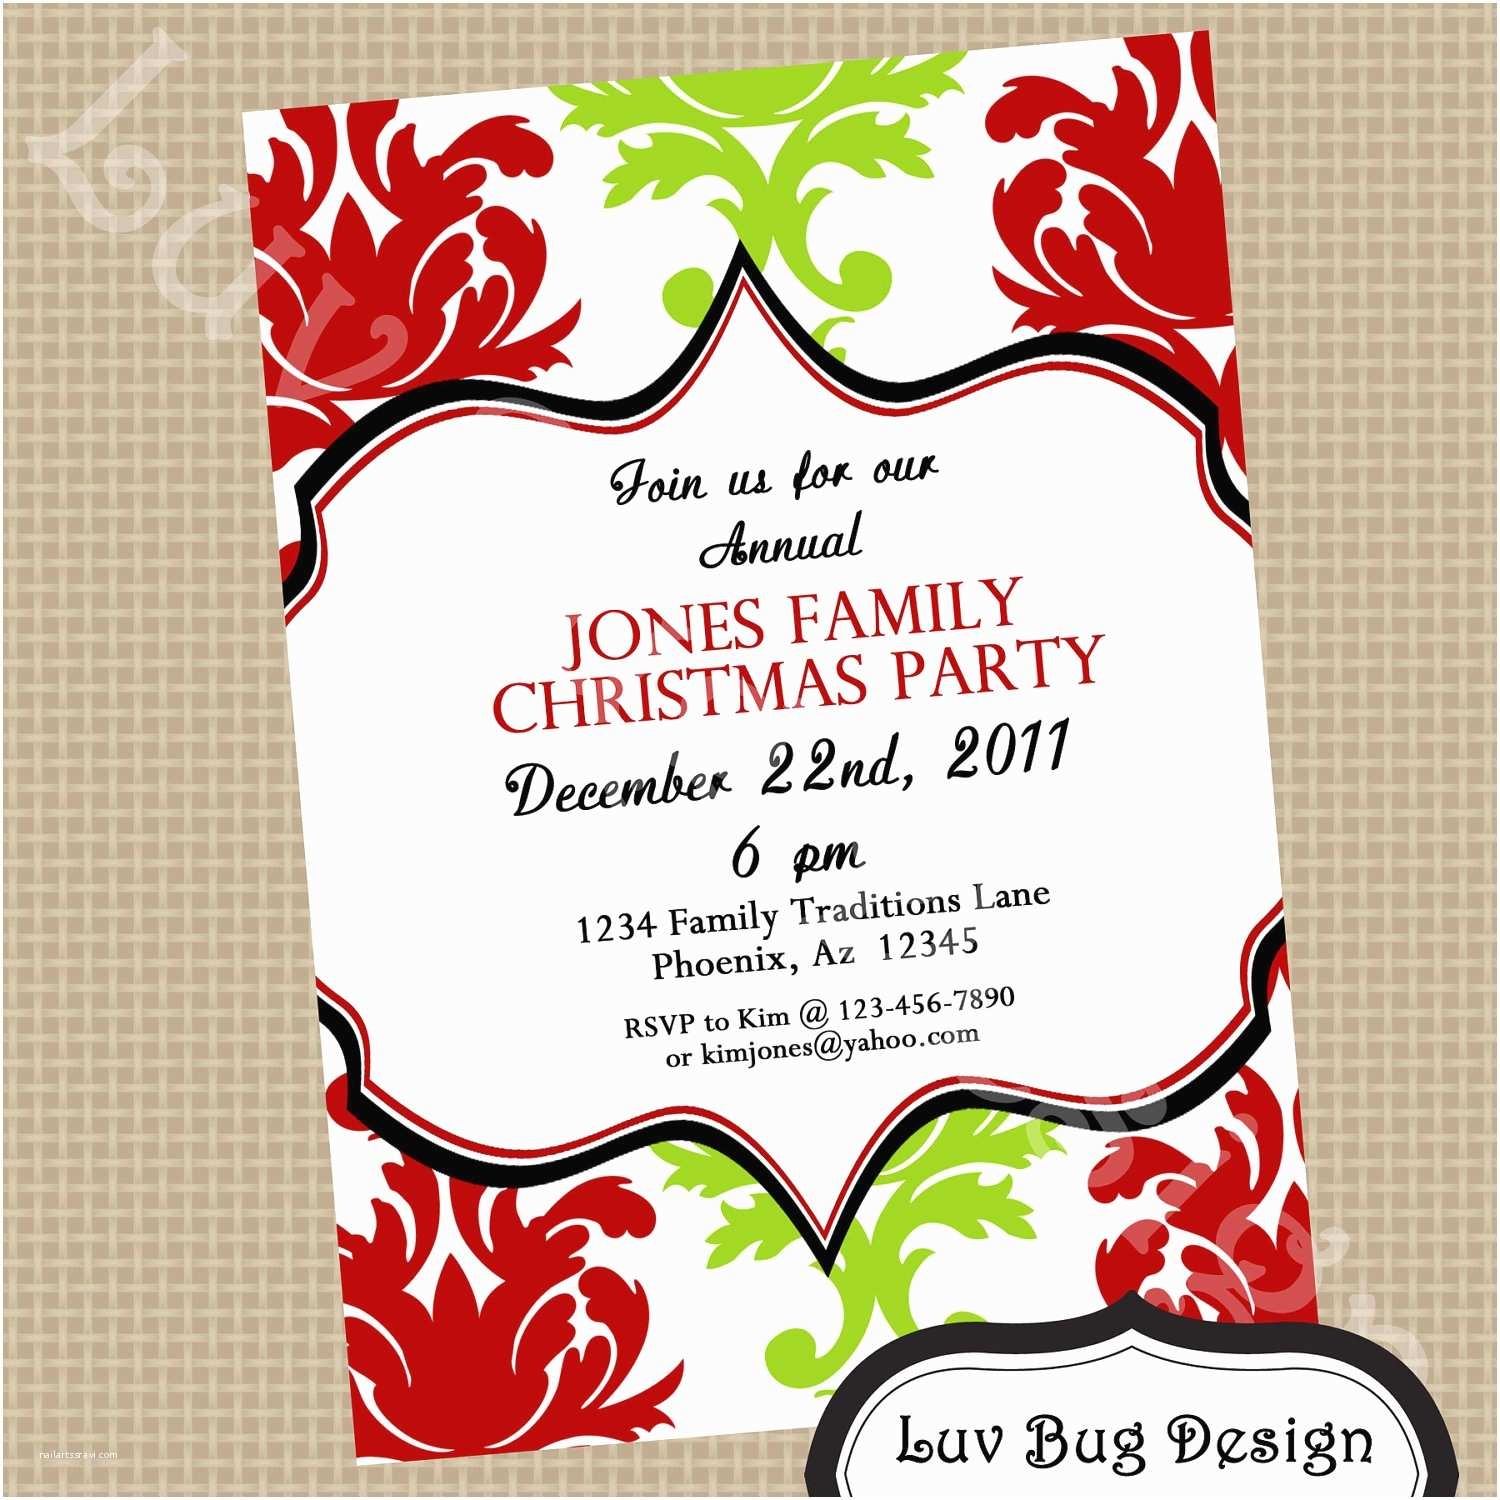 Funny Christmas Party Invitation Wording Funny Holiday Party Invitations for Kids Funny Christmas